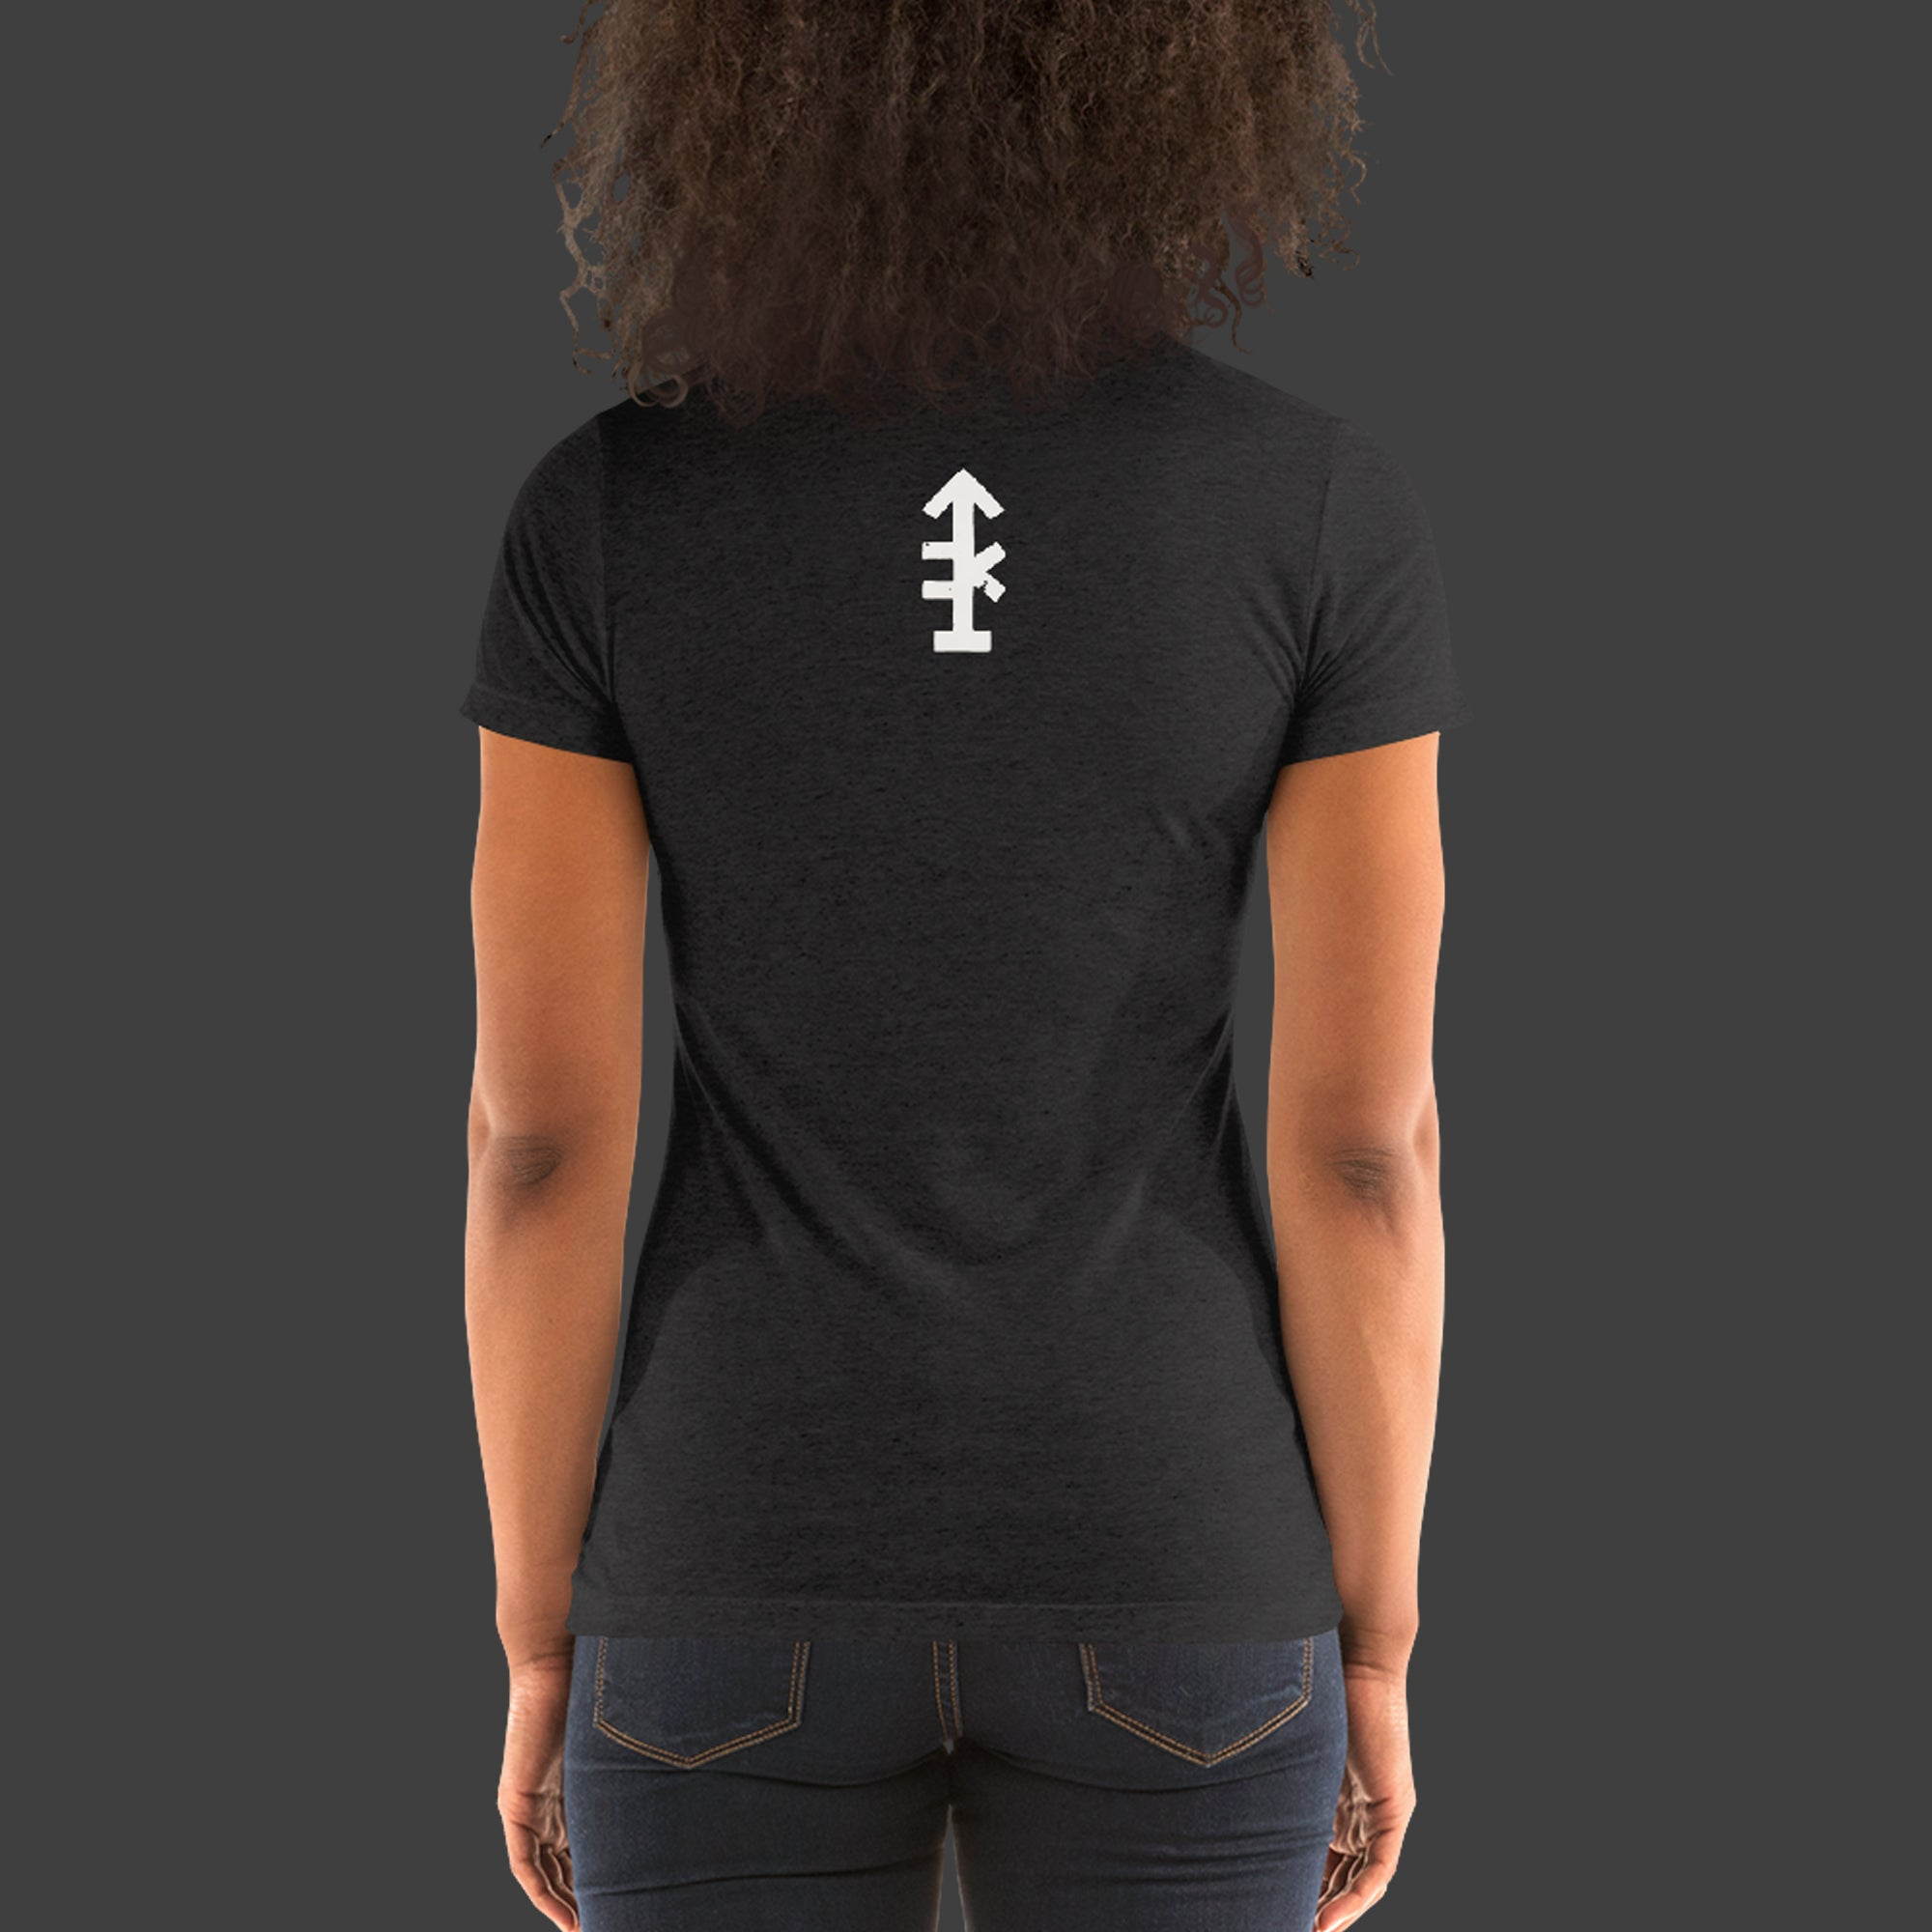 Women's UNcivilized T-Shirt (Black)